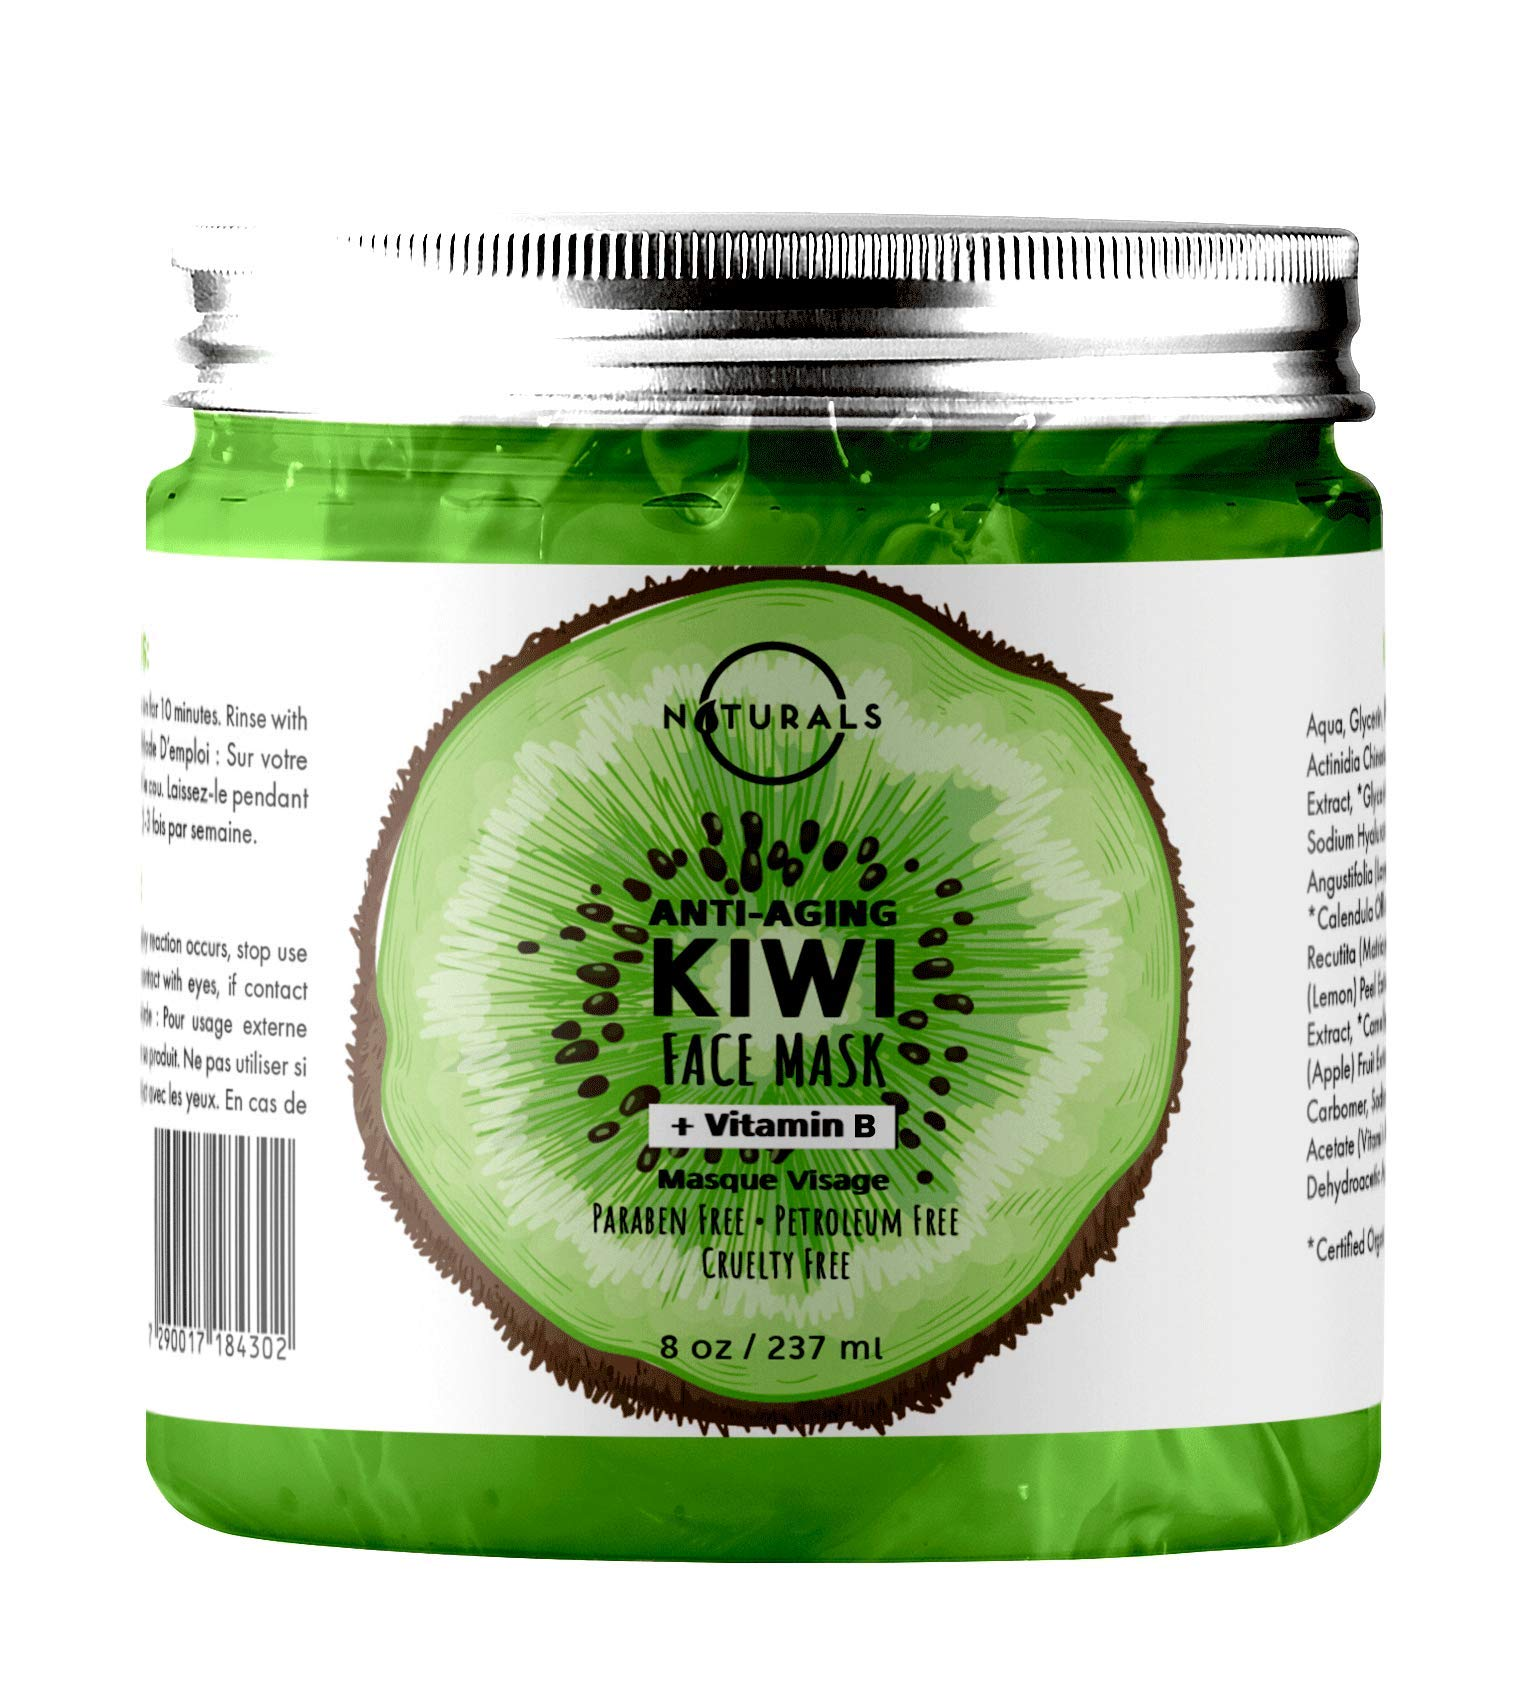 O Naturals Hydrating Kiwi & Cucumber Vitamin E Anti-Aging Gel Face Mask. Firms Skin. Reduces, Redness Sun Damage Wrinkles Scars Boosts Collagen & Moisturizes. Hyaluronic Acid Apple Spirulina Vegan 8oz by O Naturals